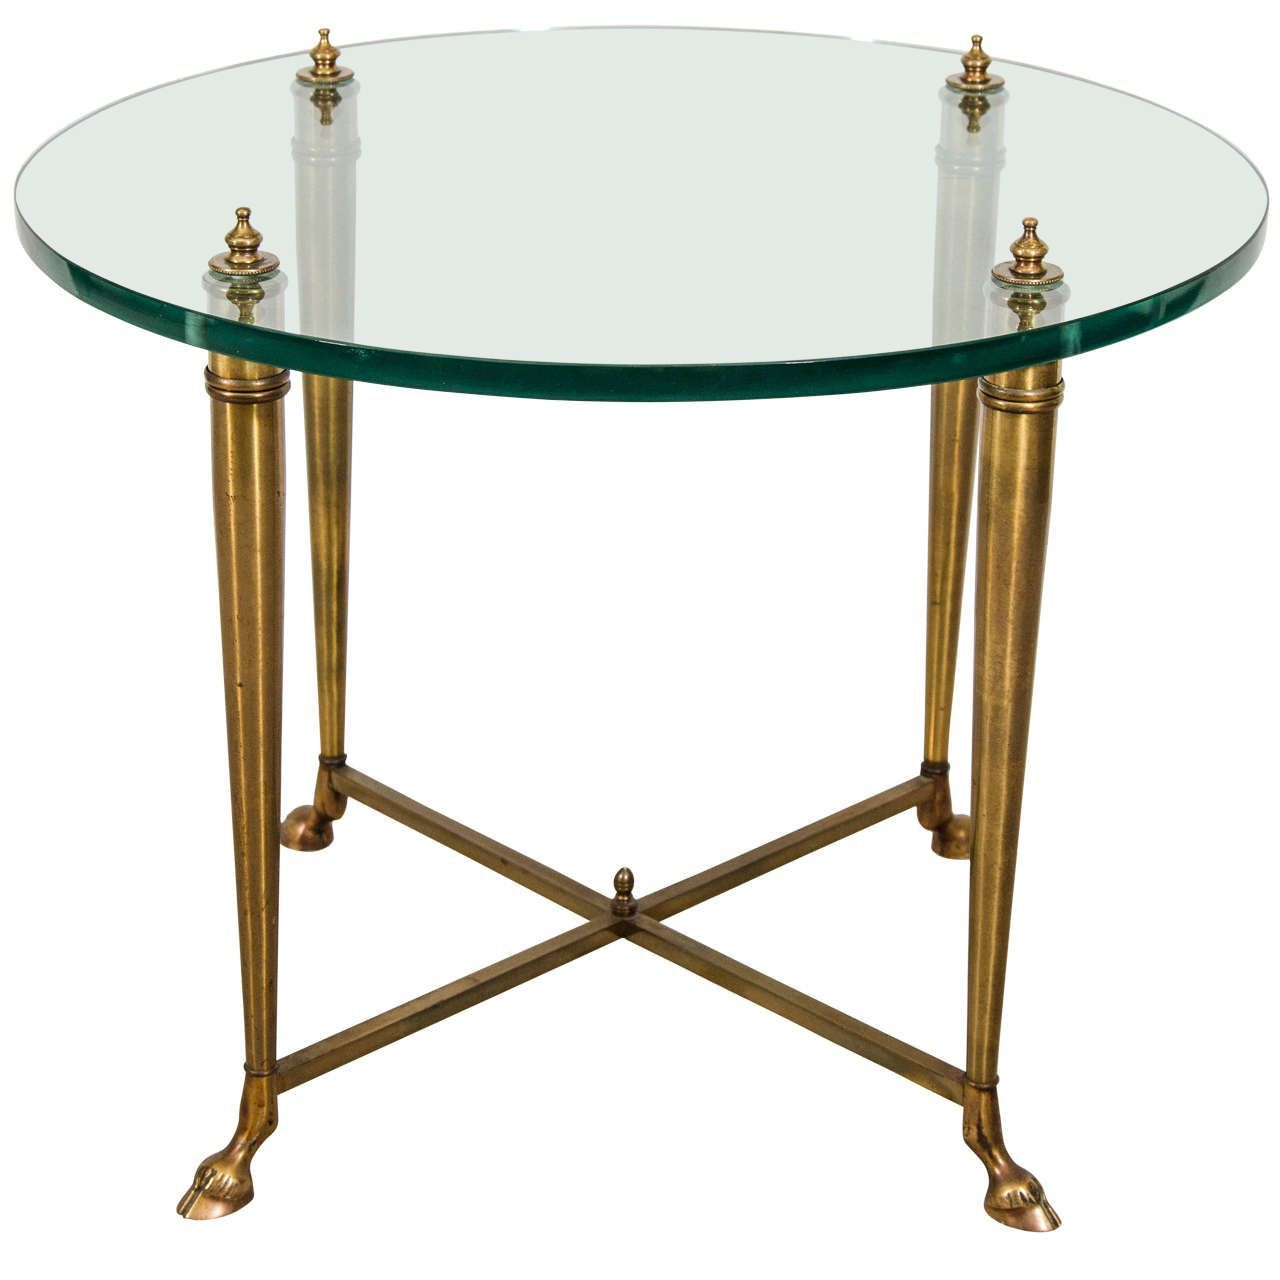 Vintage Brass And Glass Coffee Table Collection Mid Century Maison Jansen Style Brass And Gla [ 1280 x 1280 Pixel ]